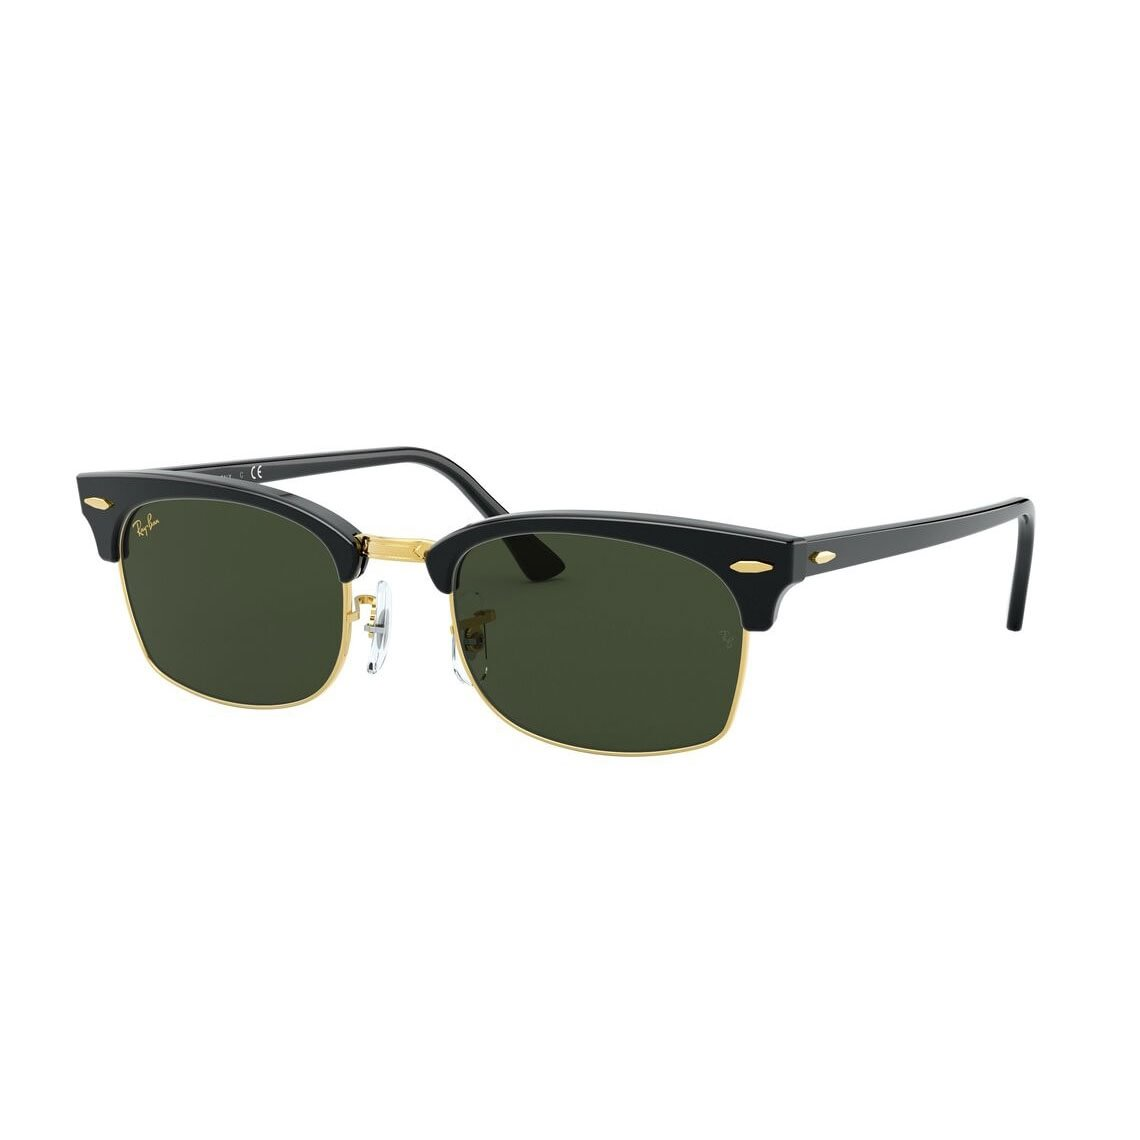 Ray-Ban Clubmaster Square Legend Gold RB3916 130331 5221